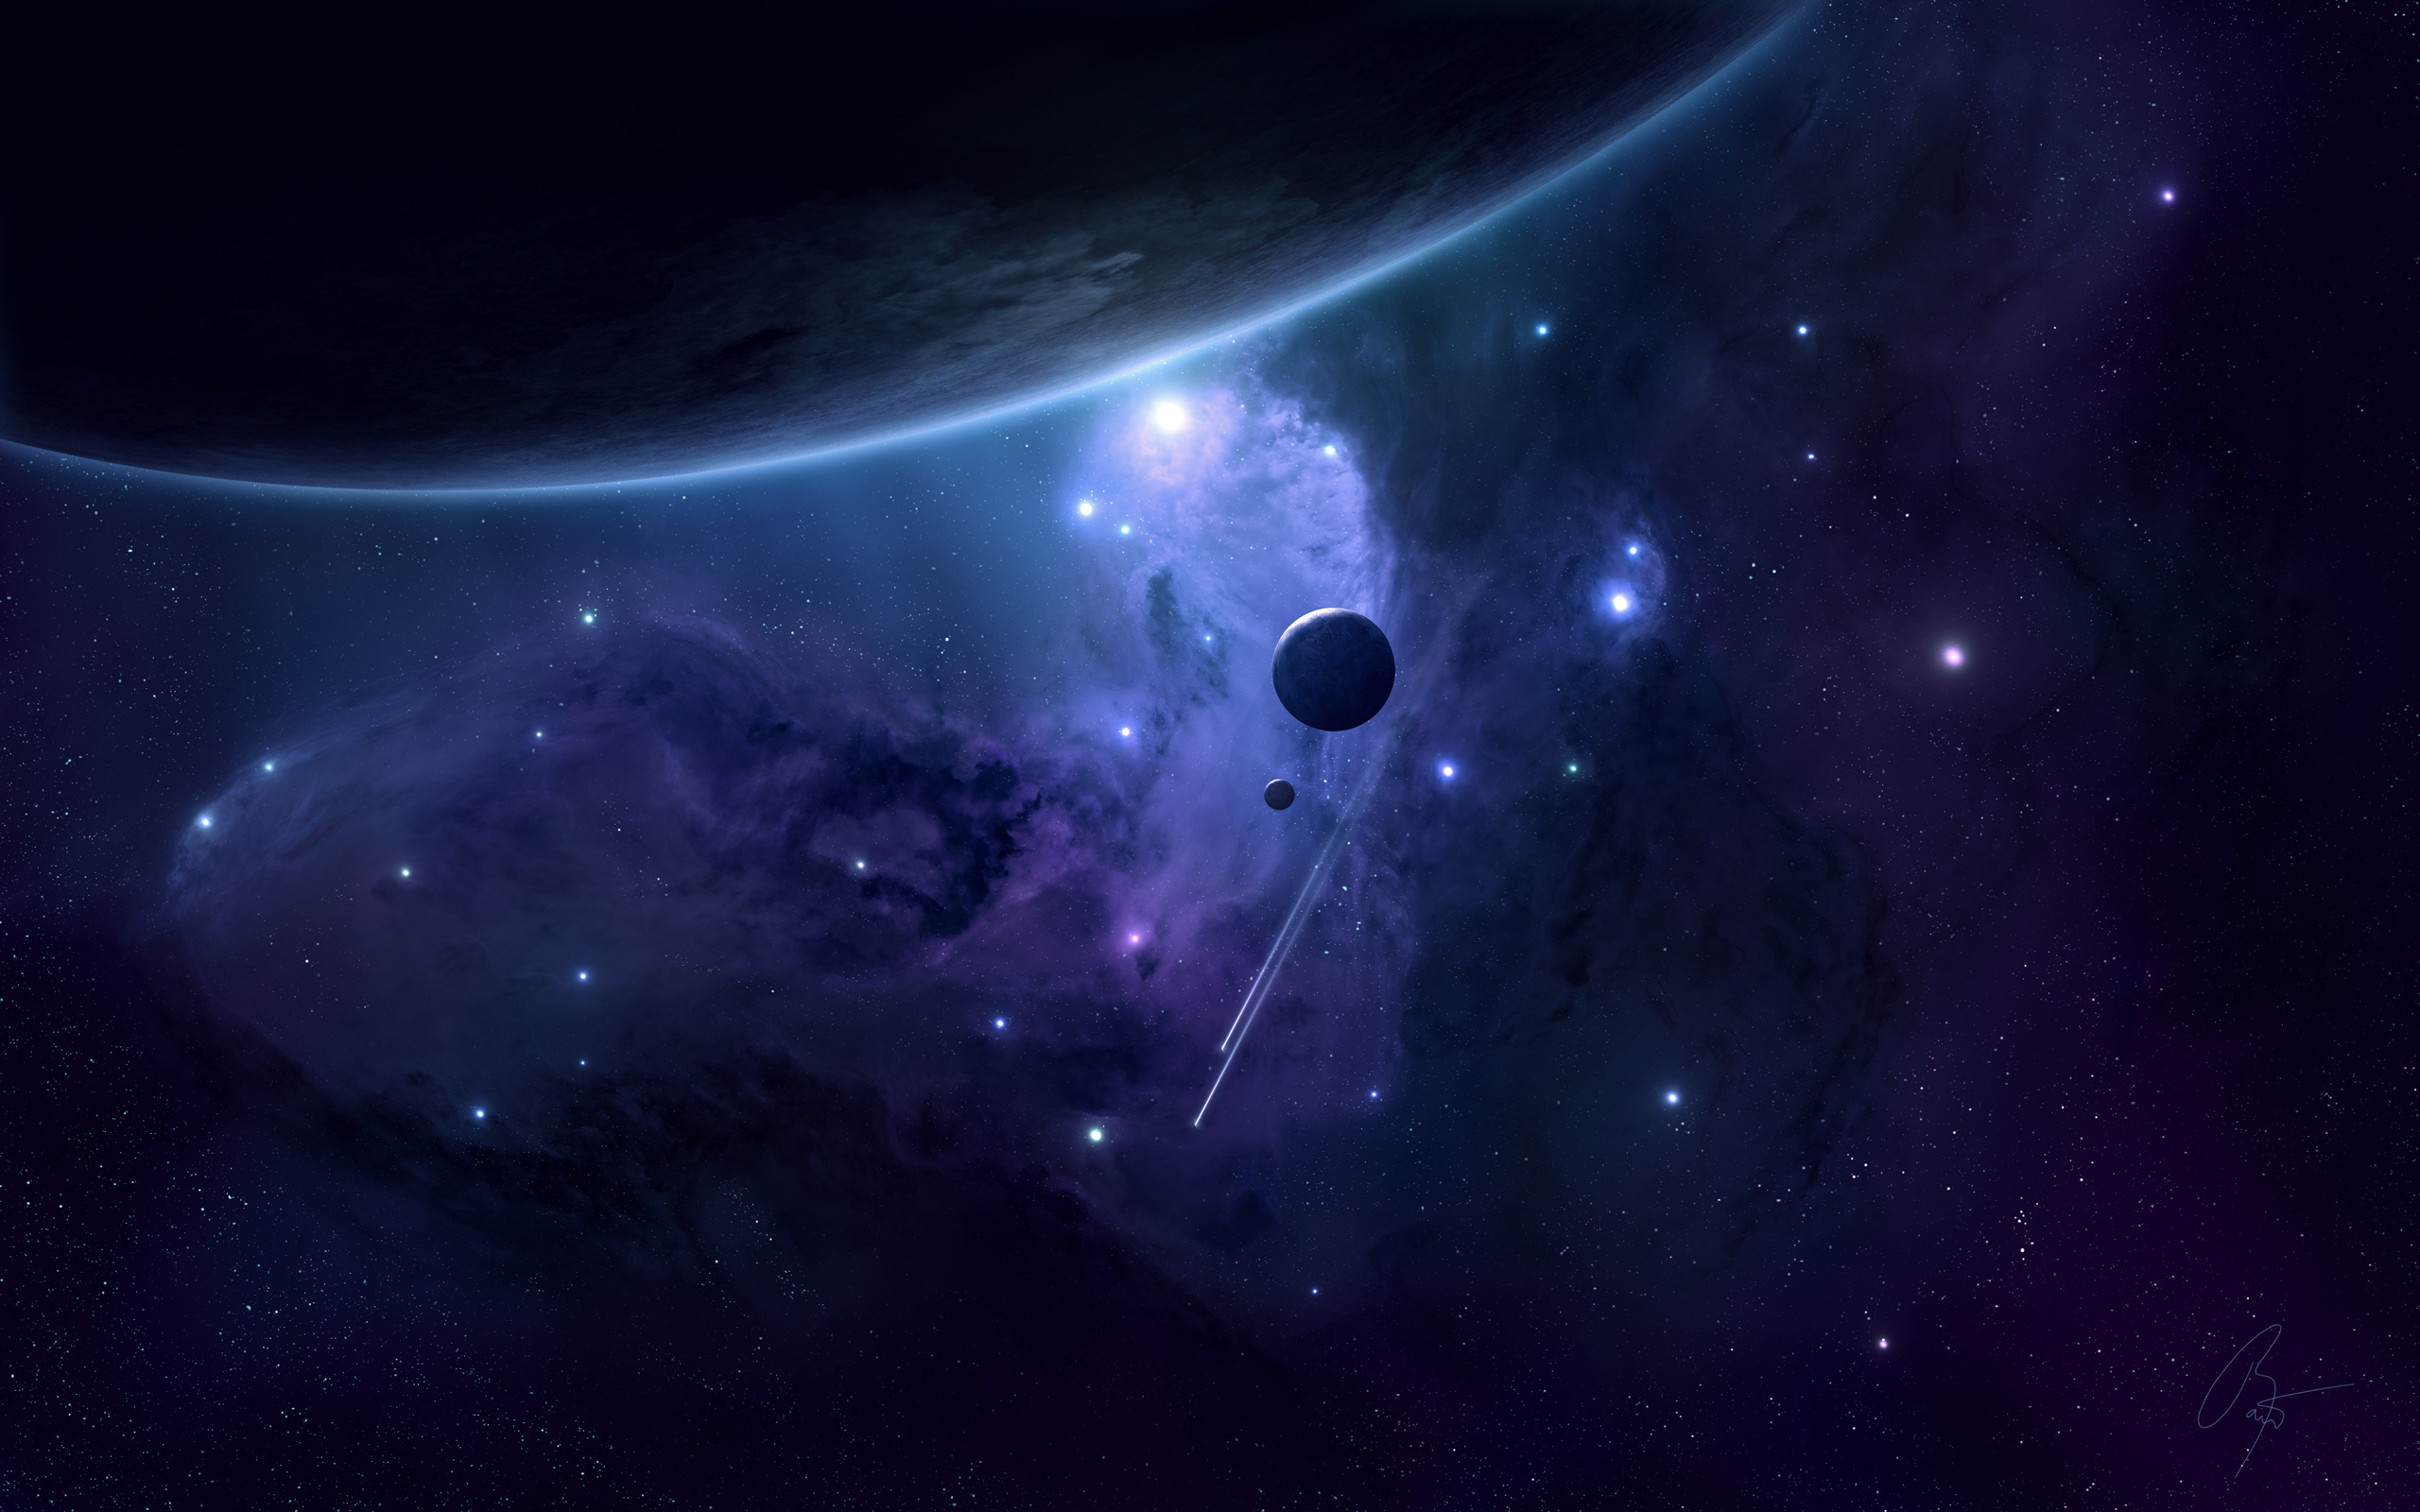 2560x1600 - Planets Wallpapers 9